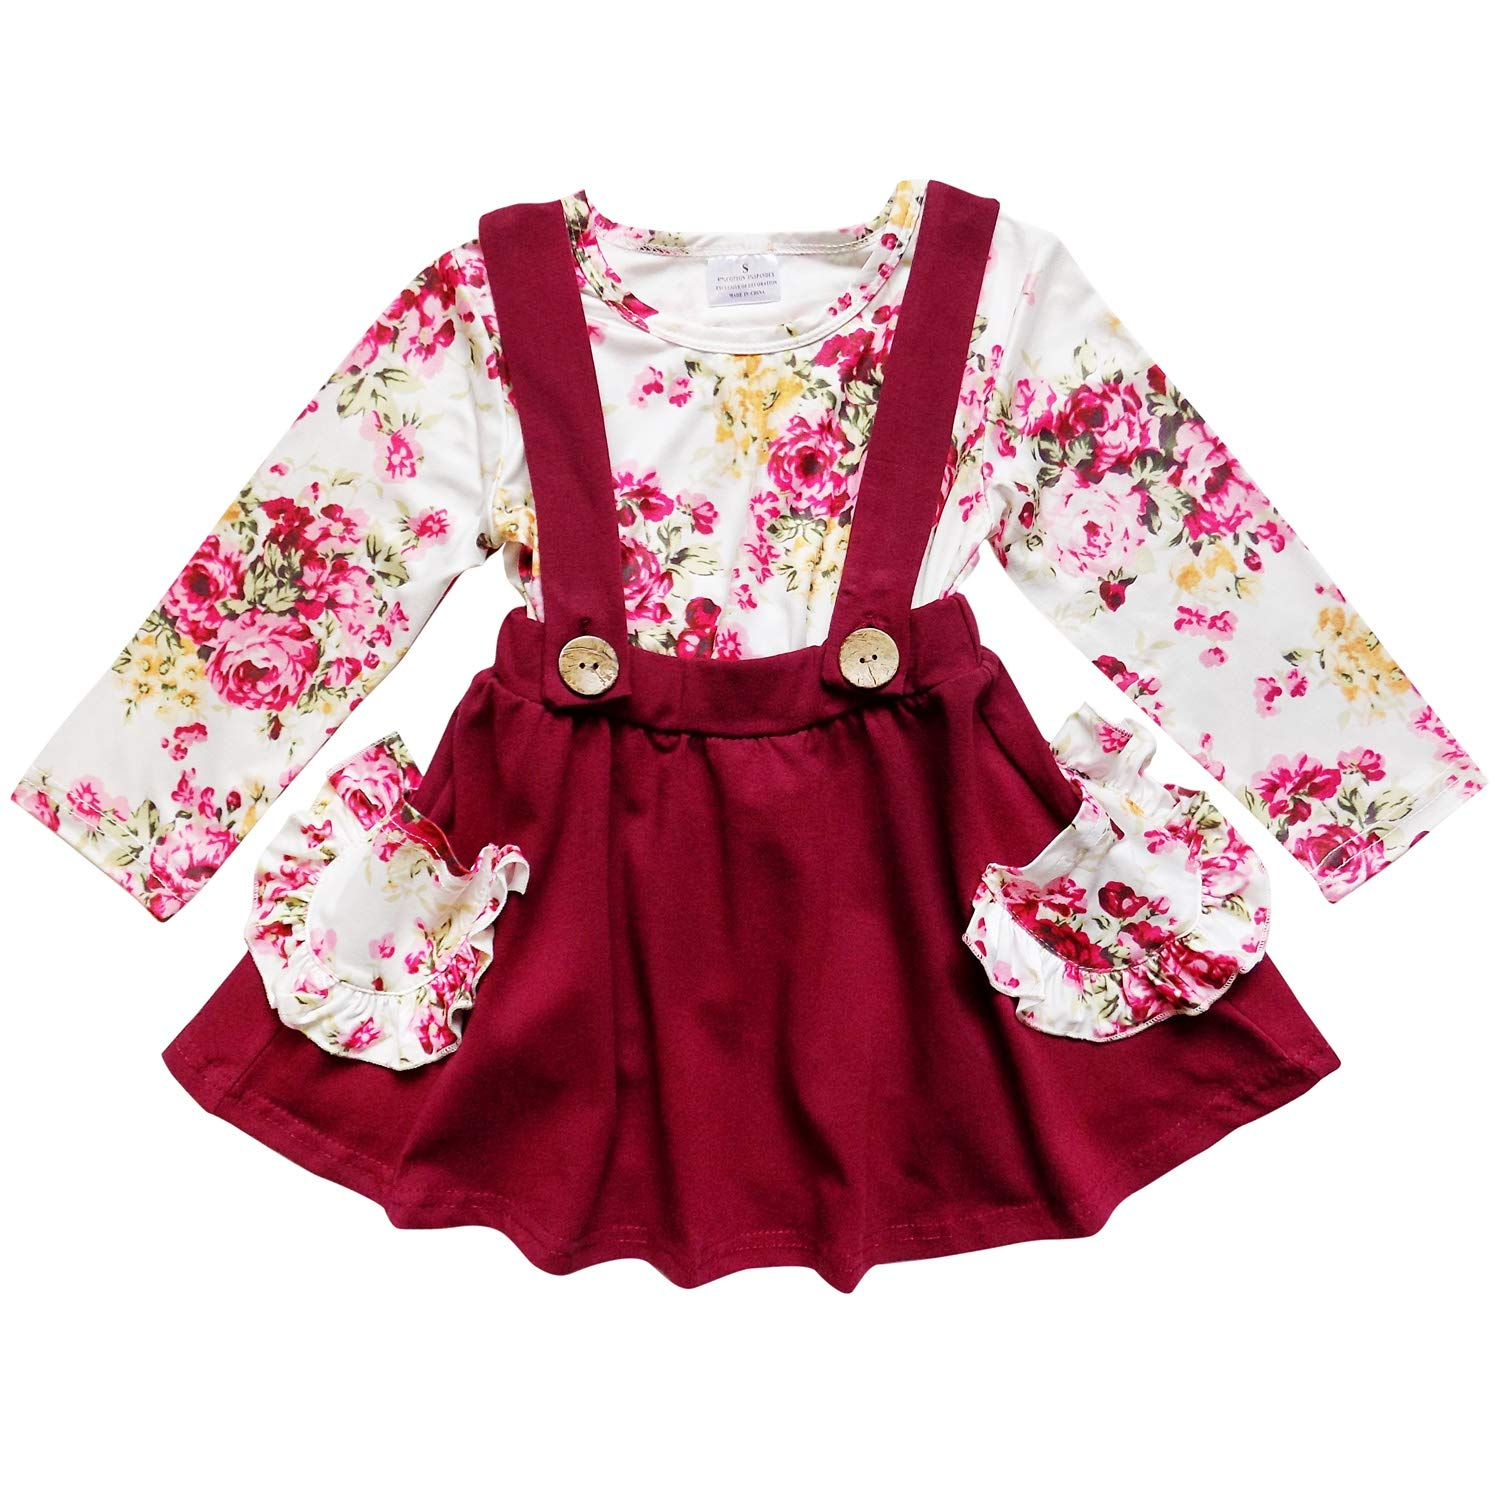 7b109d698fb75 Amazon.com: So Sydney Suspender Skirt 2 Piece Outfit, Girls Toddler Fall  Winter Christmas Holiday Dress Up Boutique Outfit: Clothing